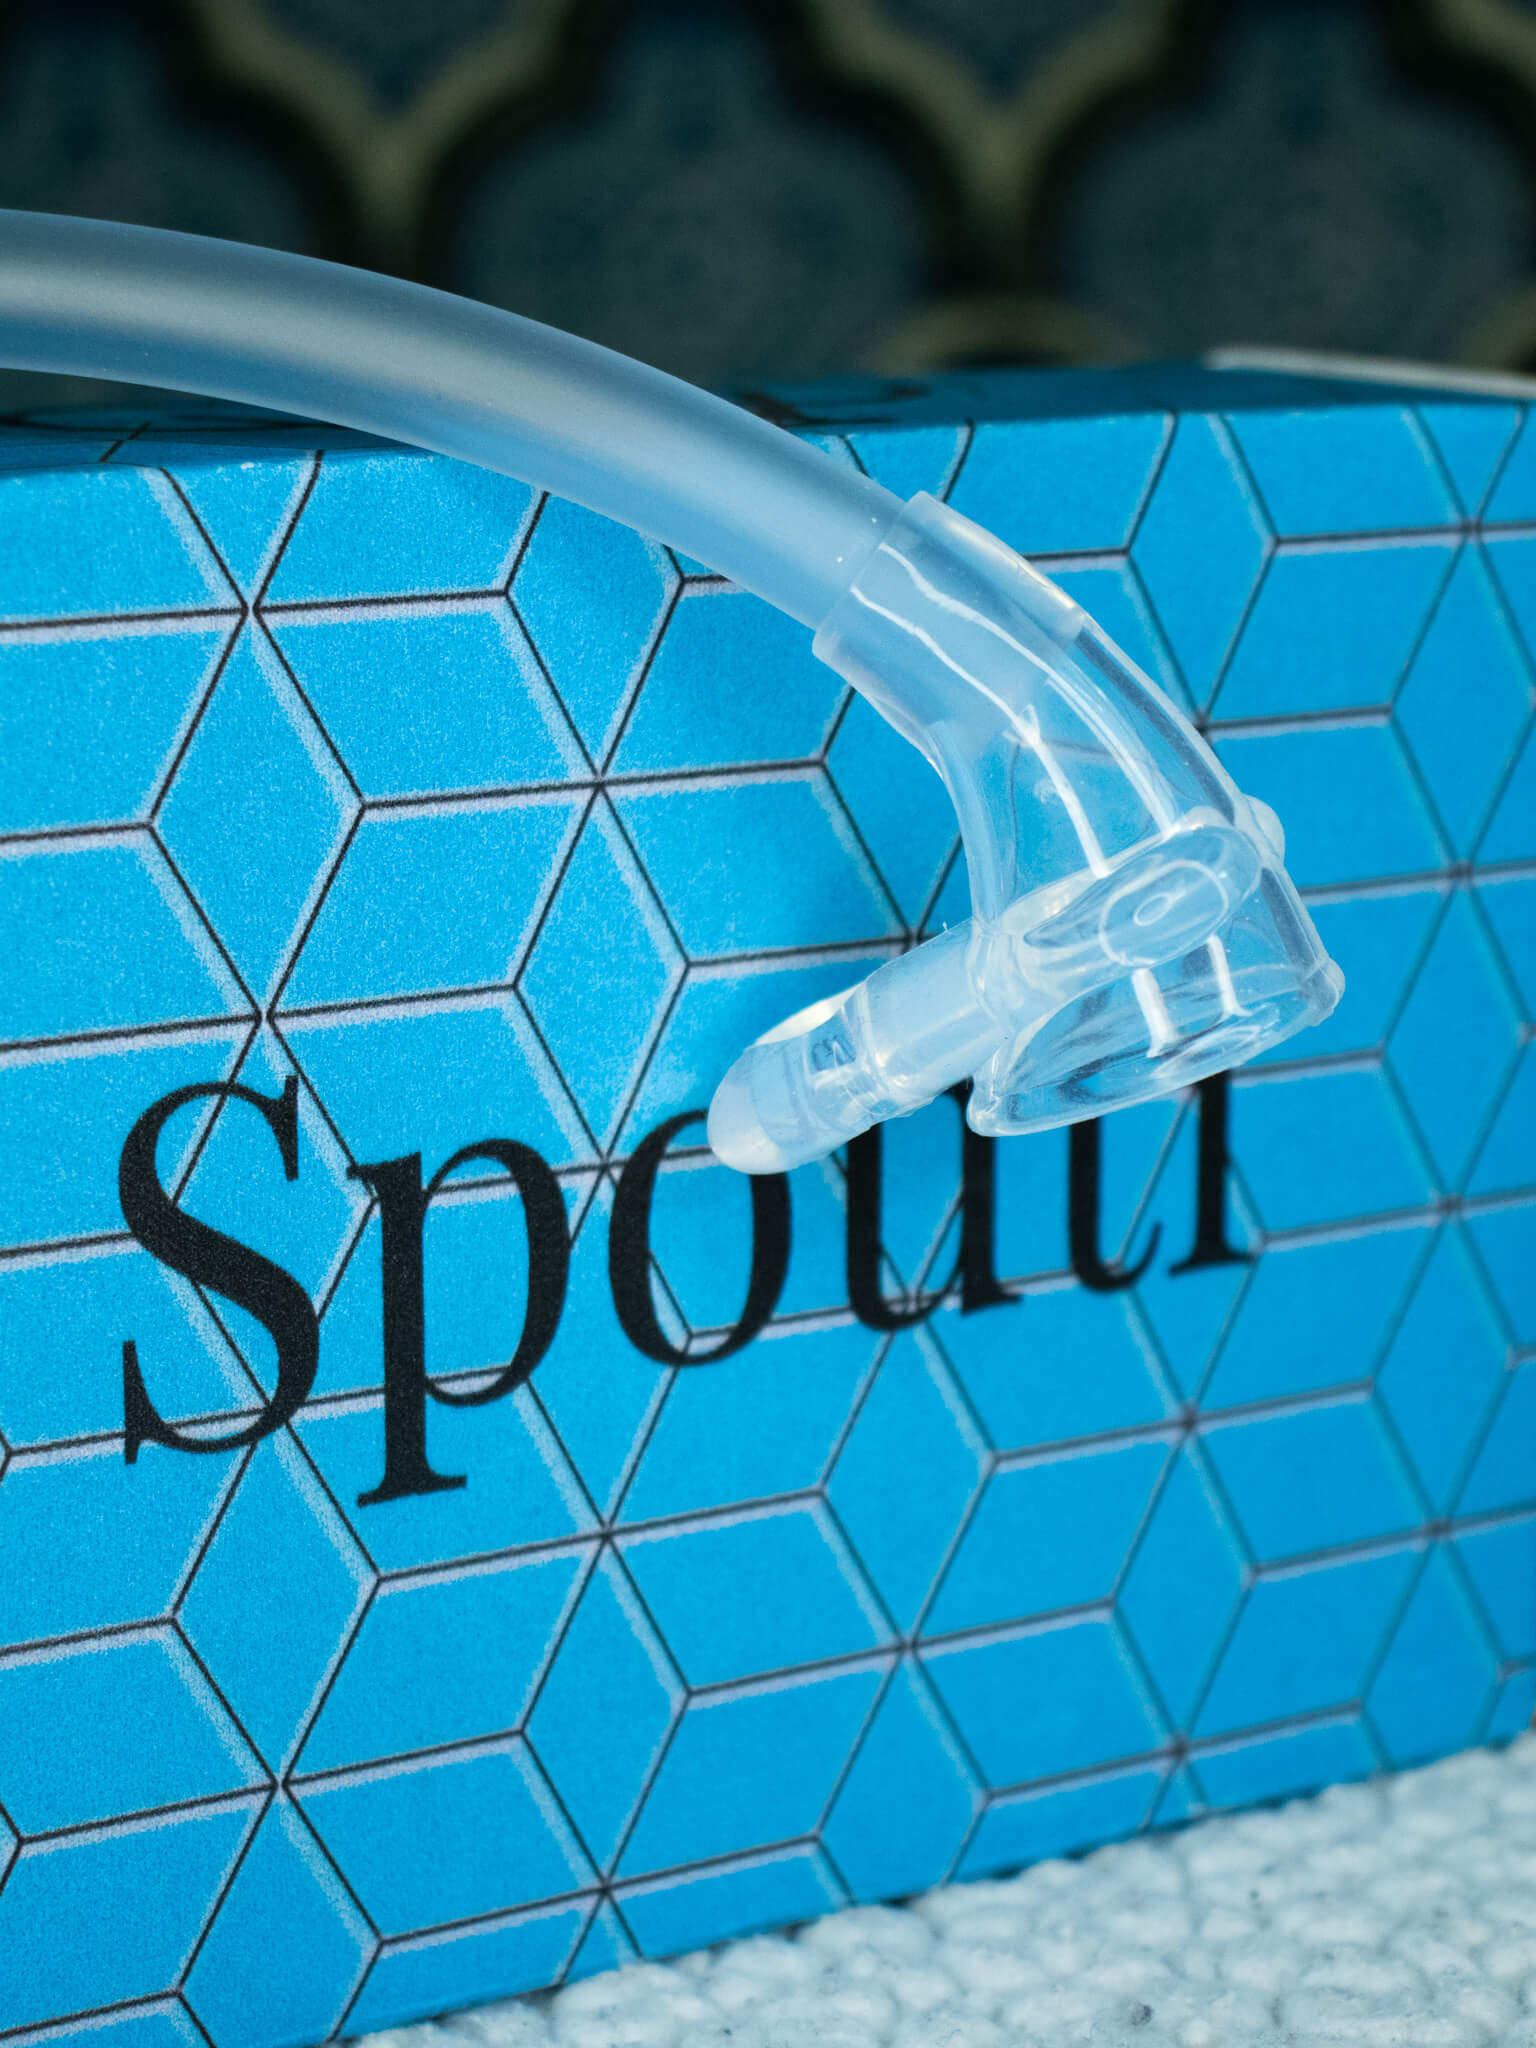 Successful Spouti™ Placement – Achieve the Perfect Seal